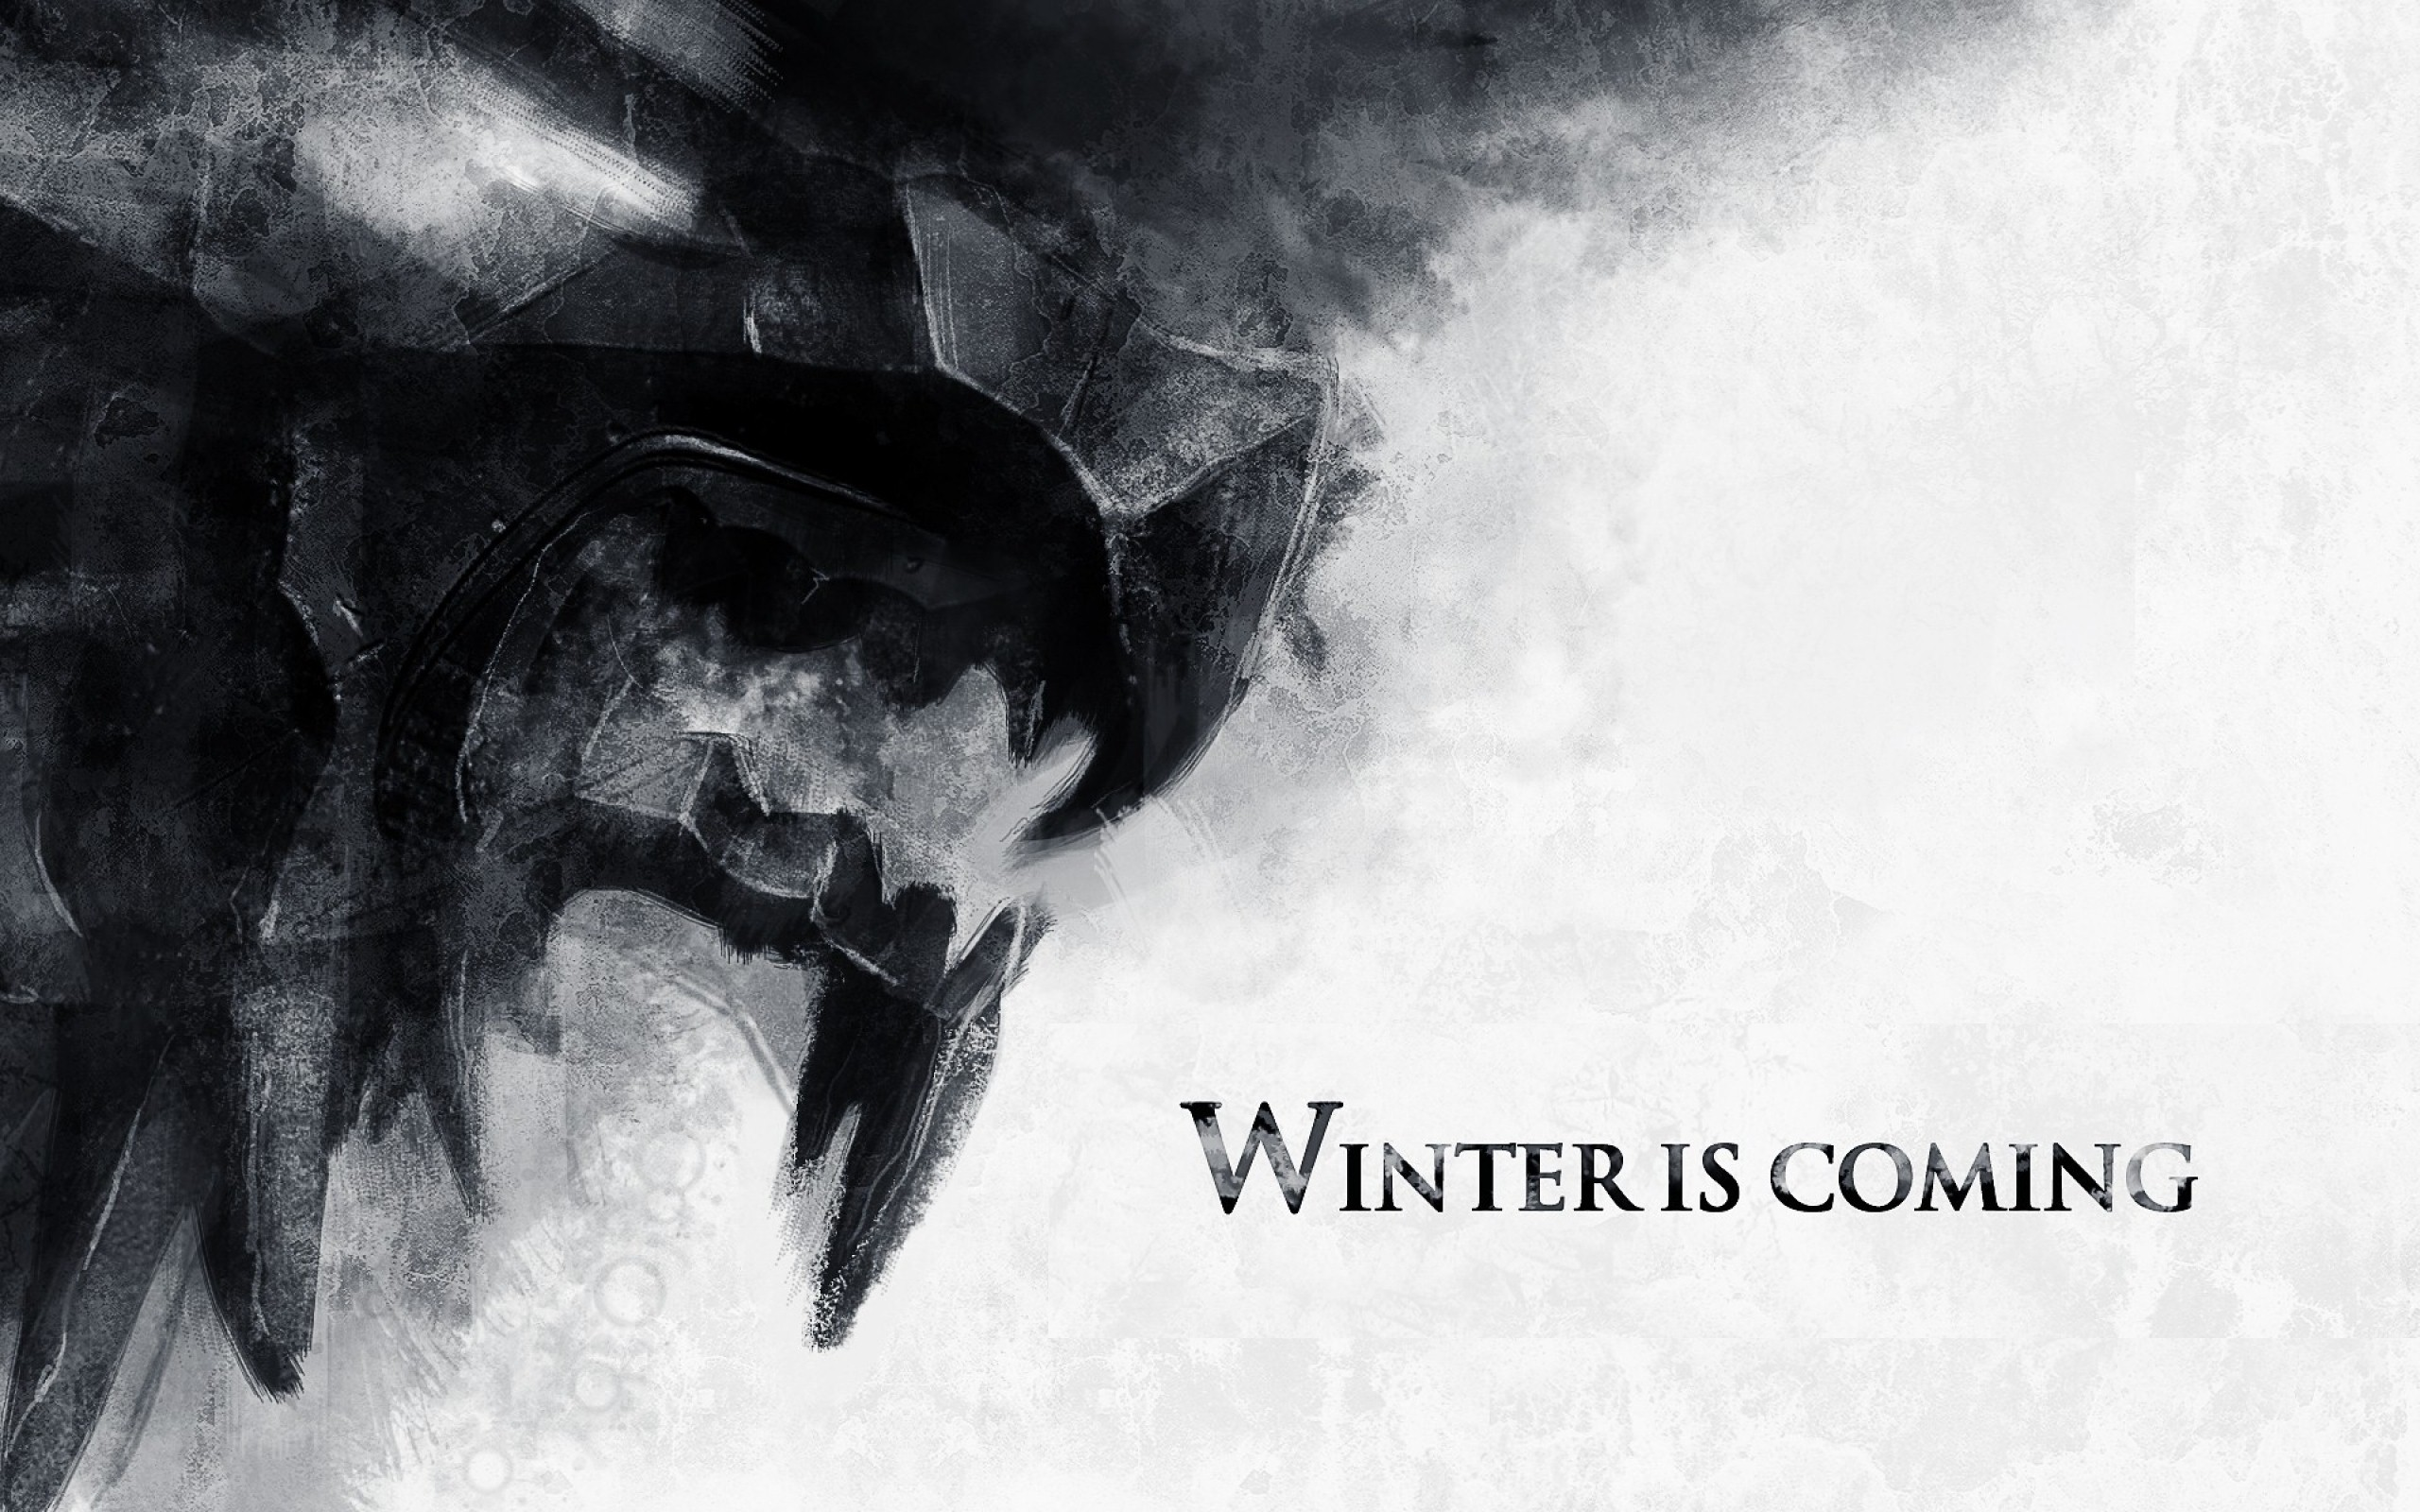 Hd Wallpapers Backgrounds For Game Of Thrones Free For: Game Of Thrones Wallpaper 1920x1080 (60+ Images